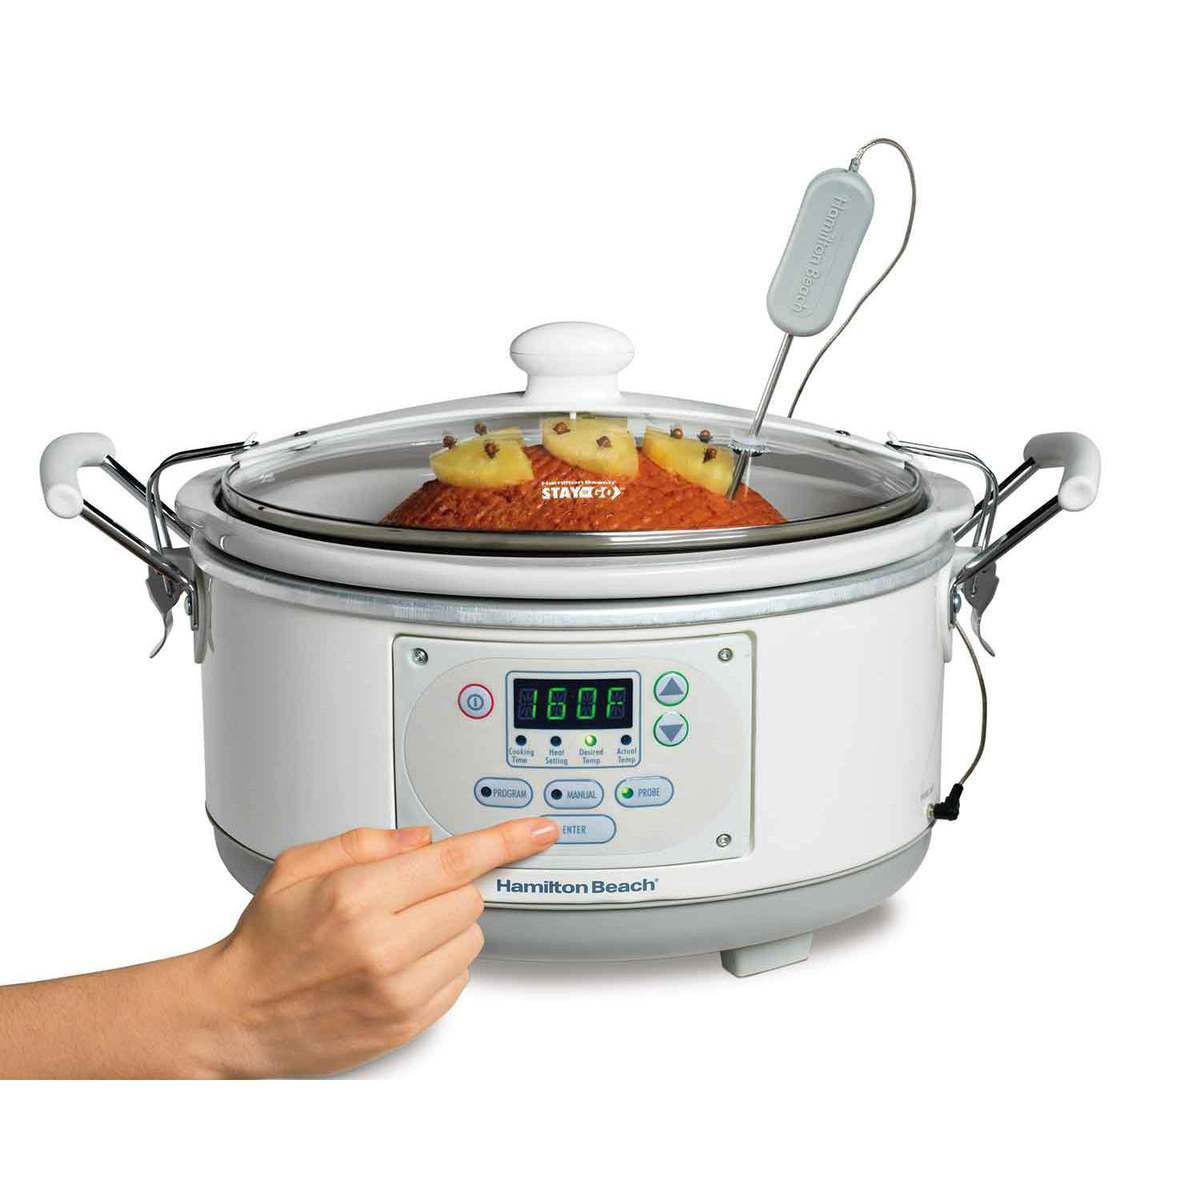 Set 'n Forget® 5 Qt. Programmable Slow Cooker (33956)